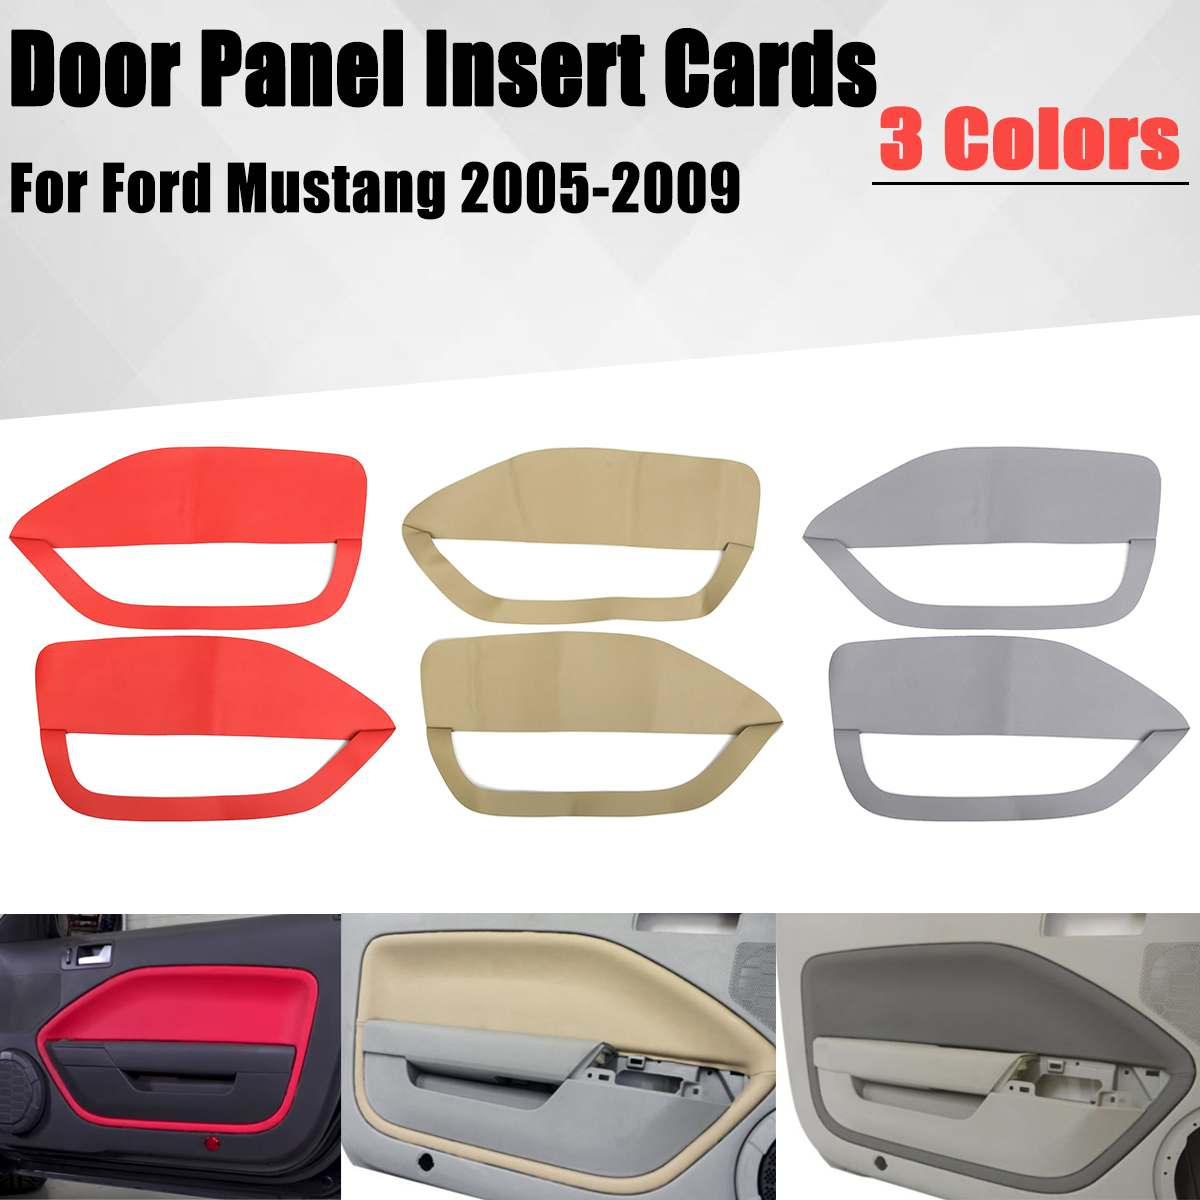 1 Pair Door Panel Insert Cards Synthetic Leather Fit For <font><b>Ford</b></font> For <font><b>Mustang</b></font> 2005 <font><b>2006</b></font> 2007 2008 2009 Front Door Plate Parts image